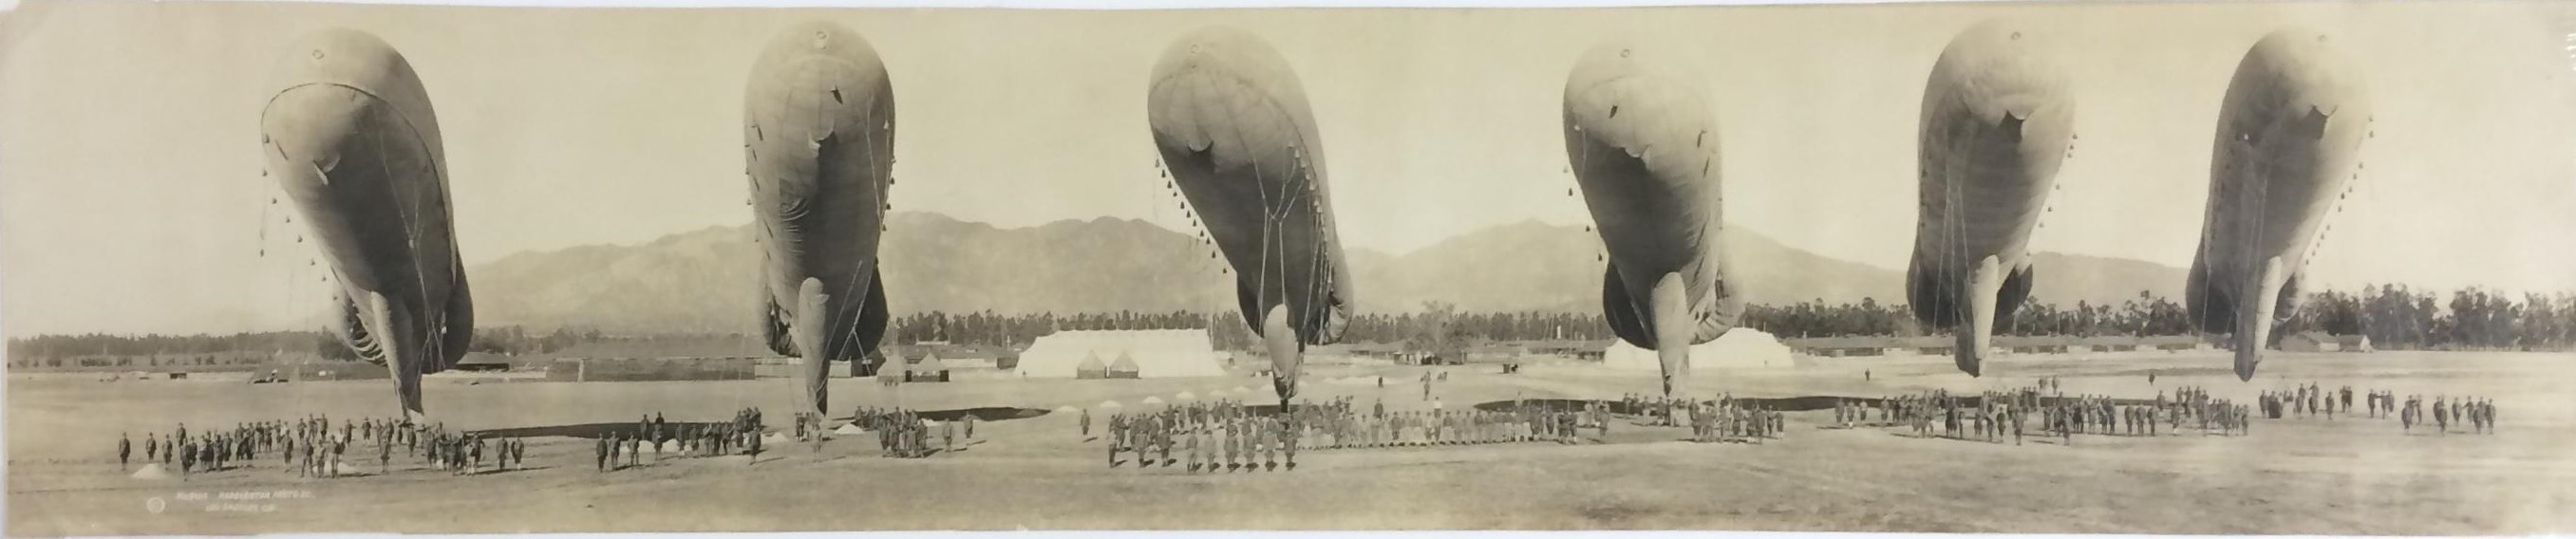 observation balloons ross field balloon school 1918